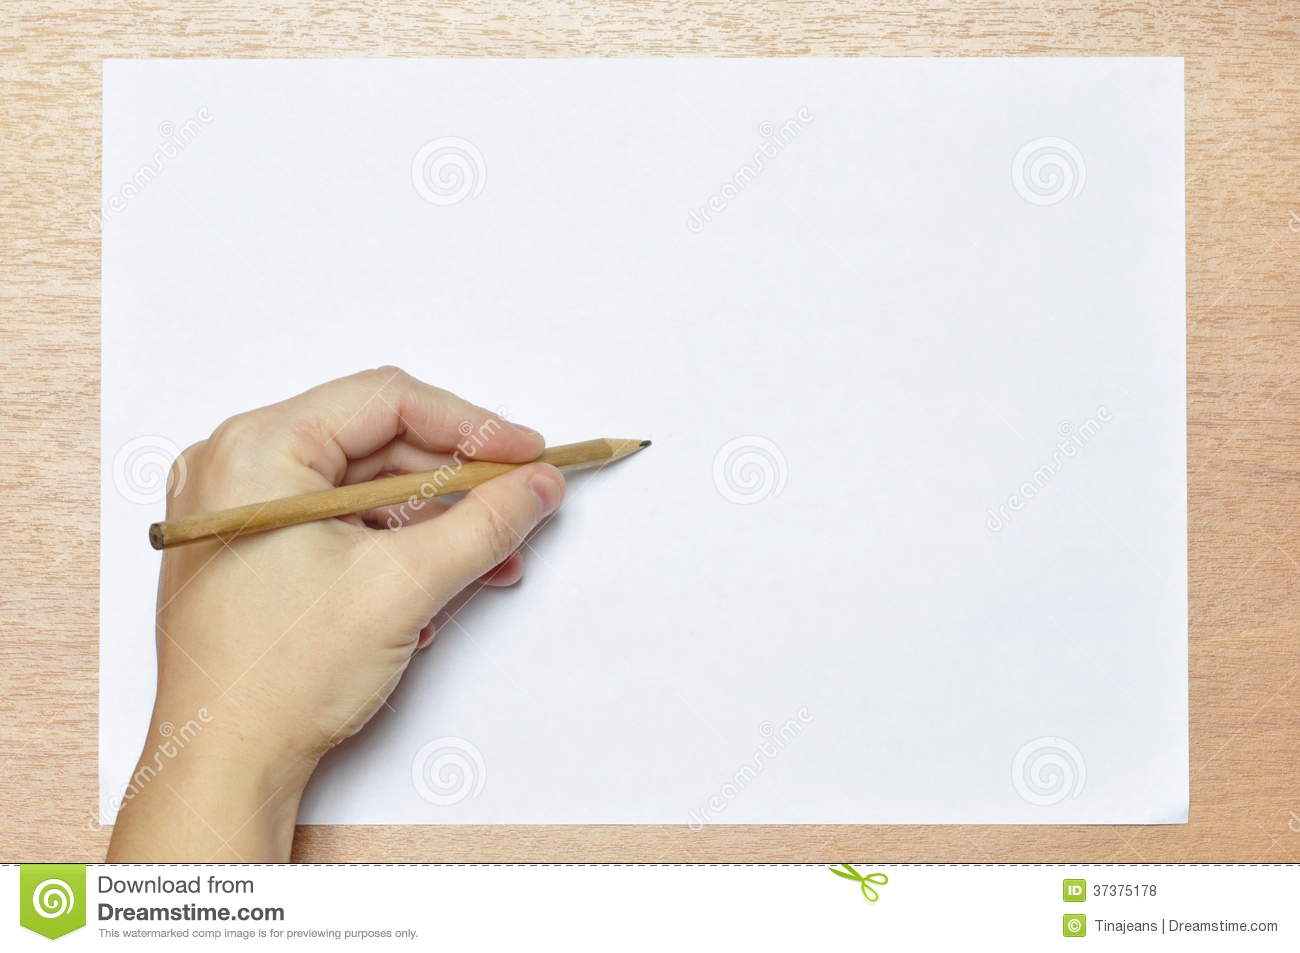 left handed research paper Out of 100 handwriting samples, 50 were left-handed writer and 50 were right- handed writer the study was carried out at the school of forensic-science,.